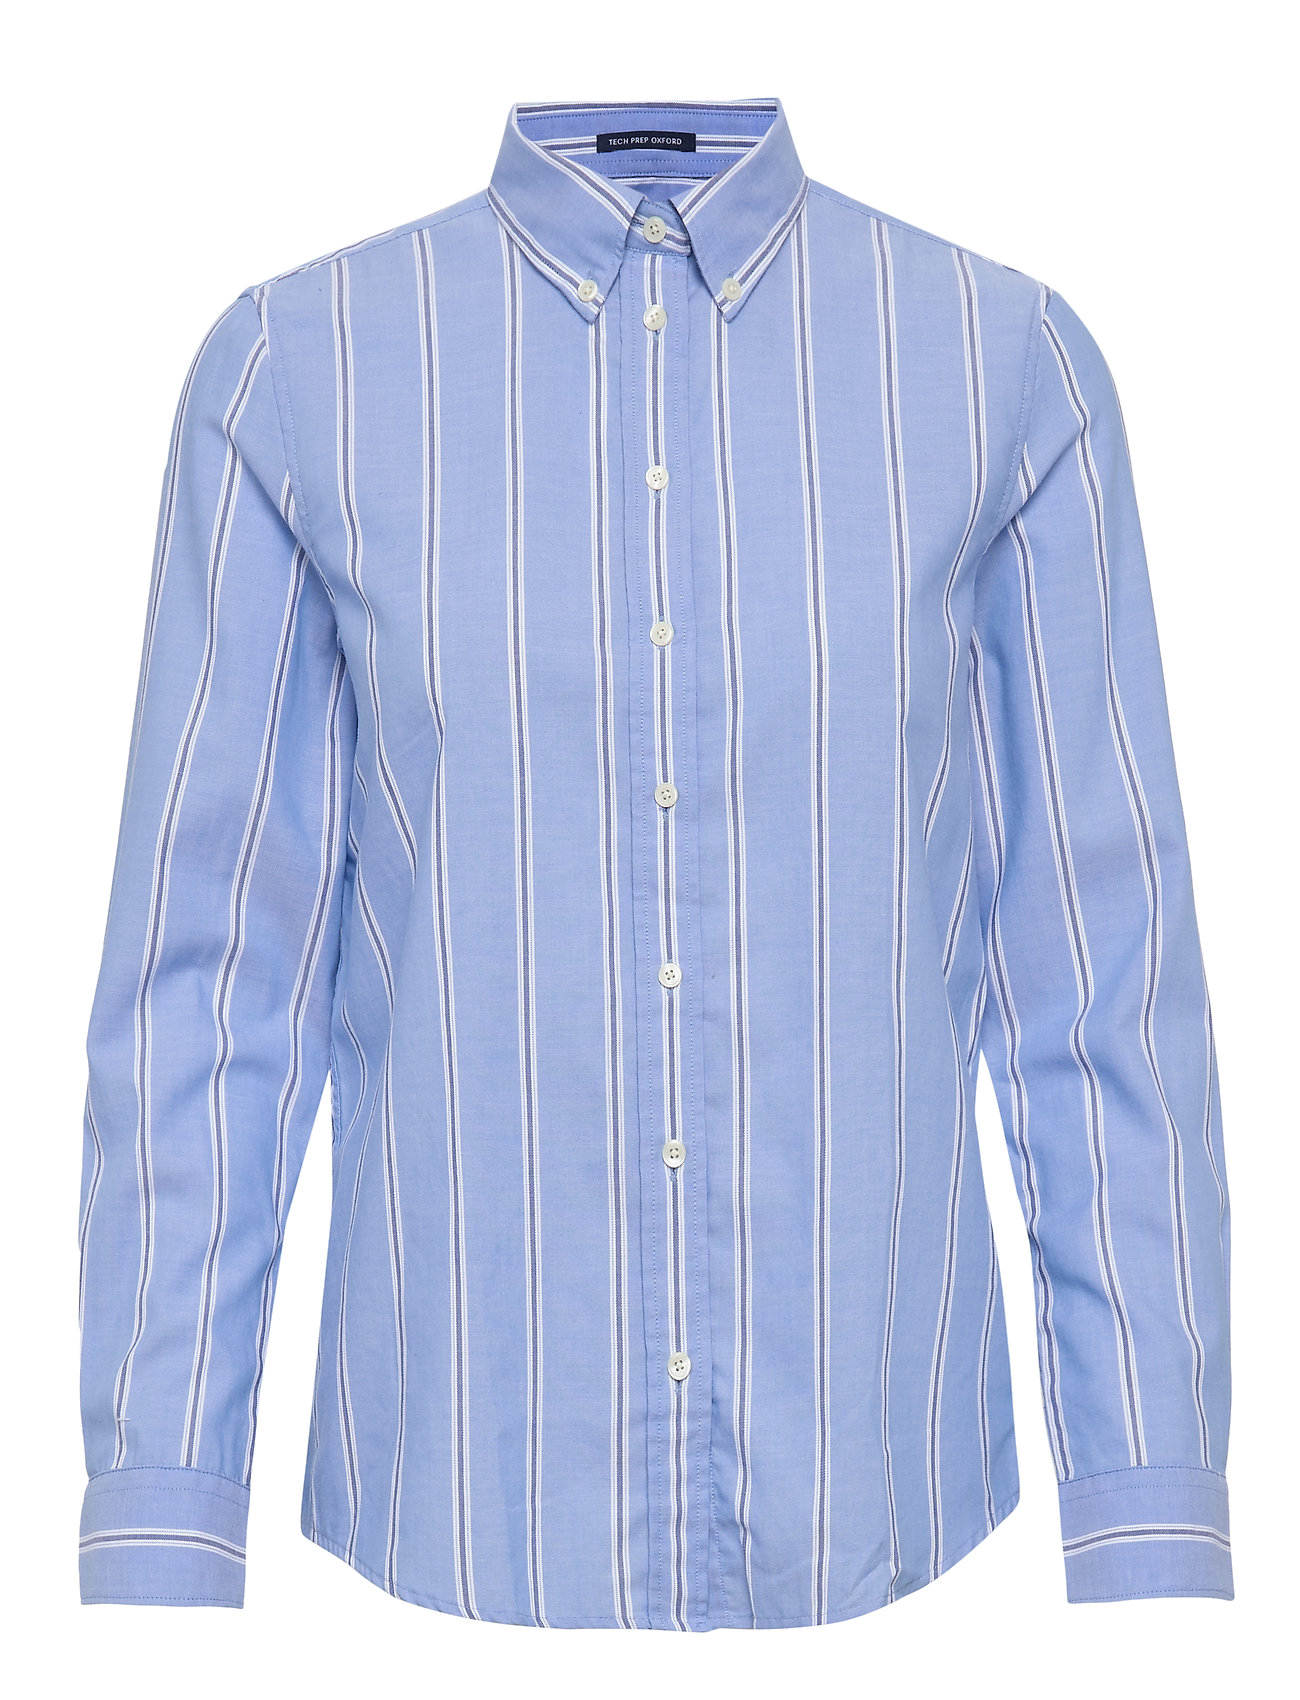 Gant D1. TP STRIPED OXORD BD SHIRT - PACIFIC BLUE